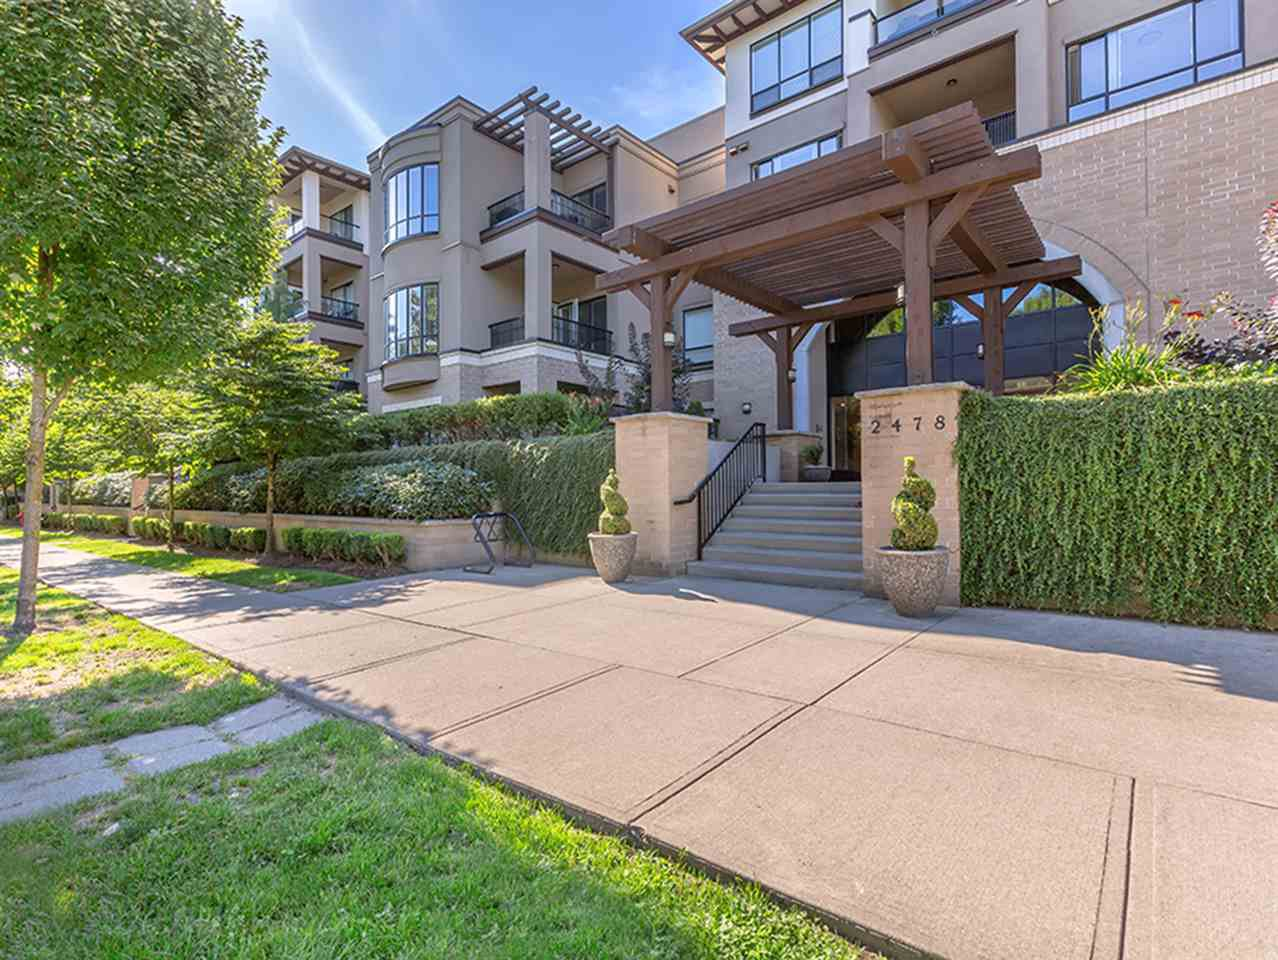 Main Photo: 112 2478 WELCHER Avenue in Port Coquitlam: Central Pt Coquitlam Condo for sale : MLS®# R2195154